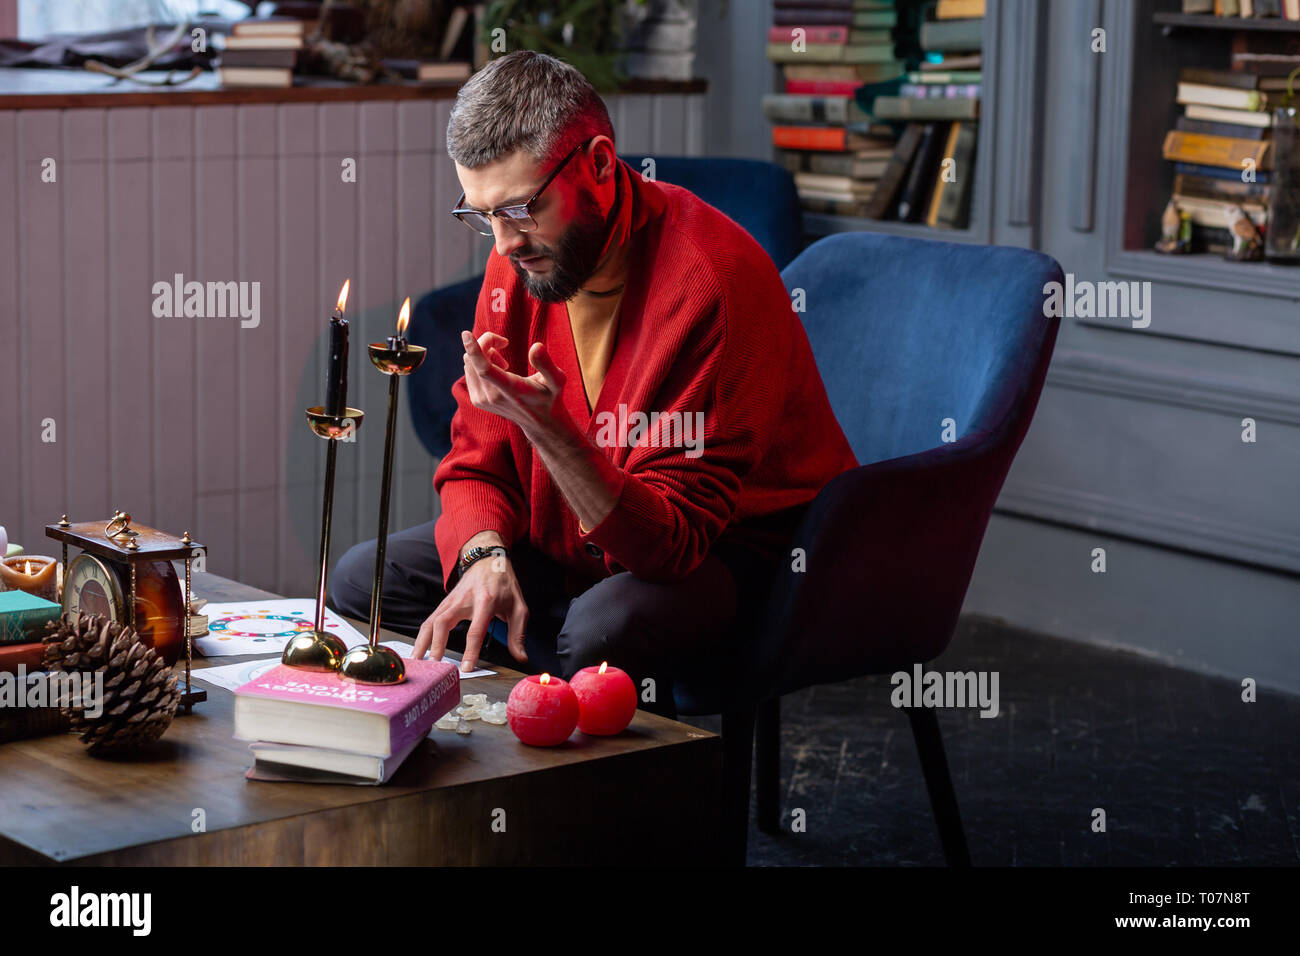 Bearded fortune-teller having some difficulties while working at home - Stock Image